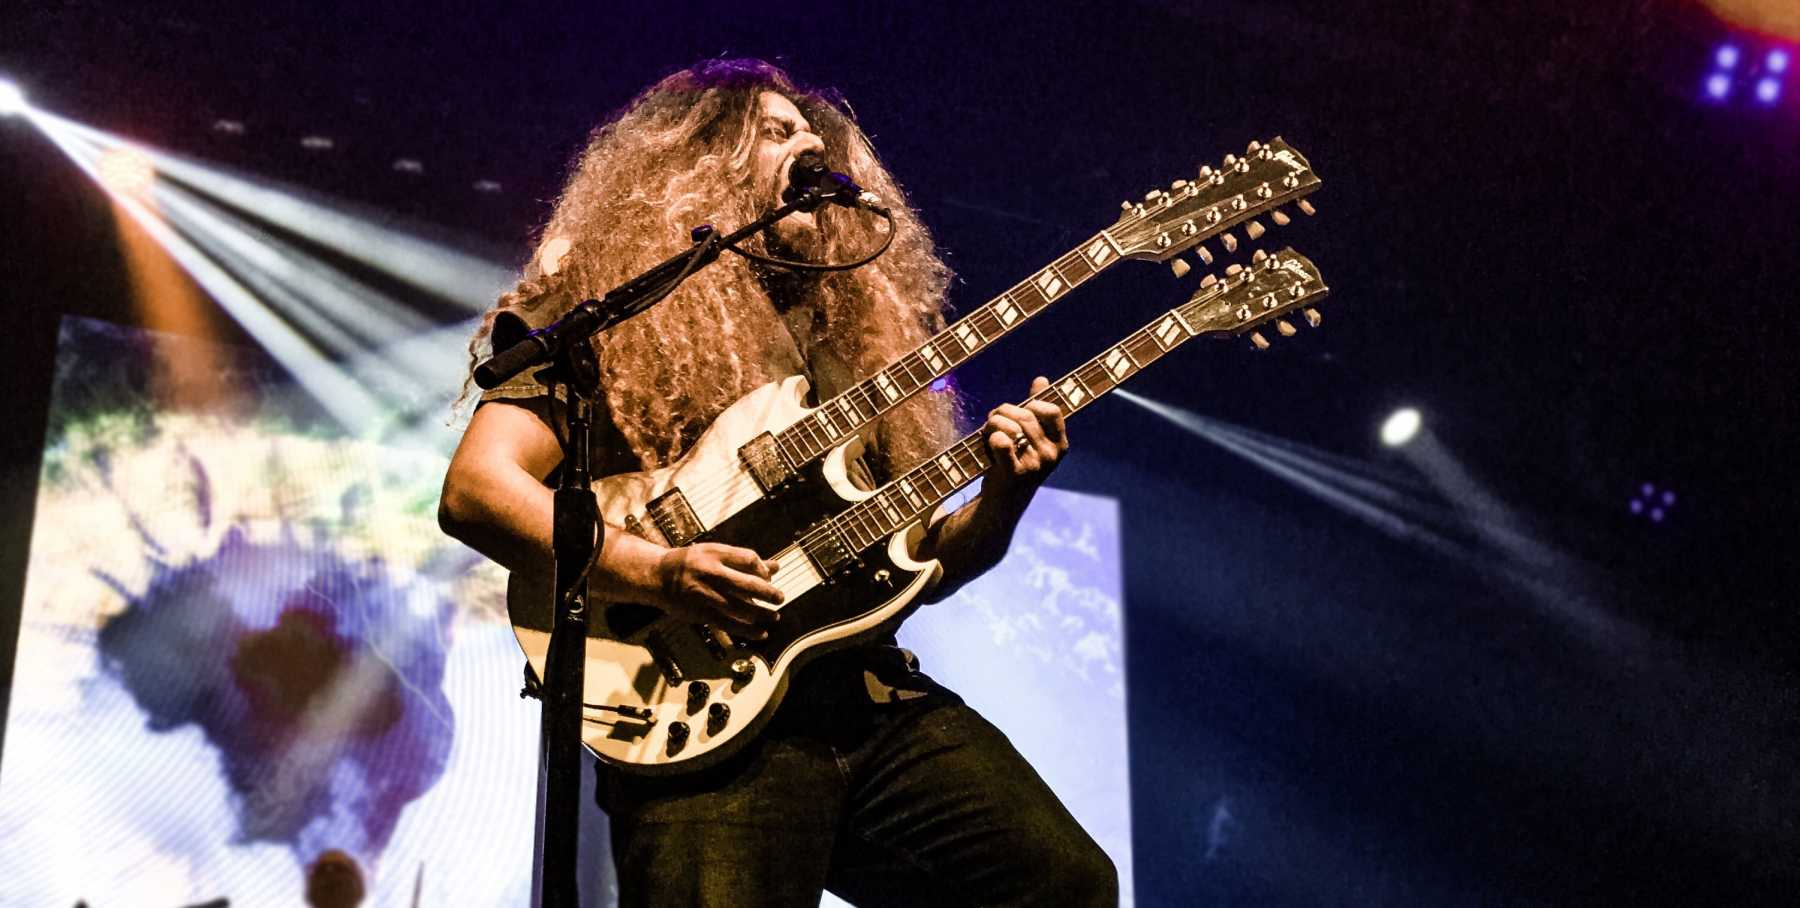 Coheed And Cambria Announce Summer Tour With Taking Back Sunday | Coheed And Cambria Tour 2018